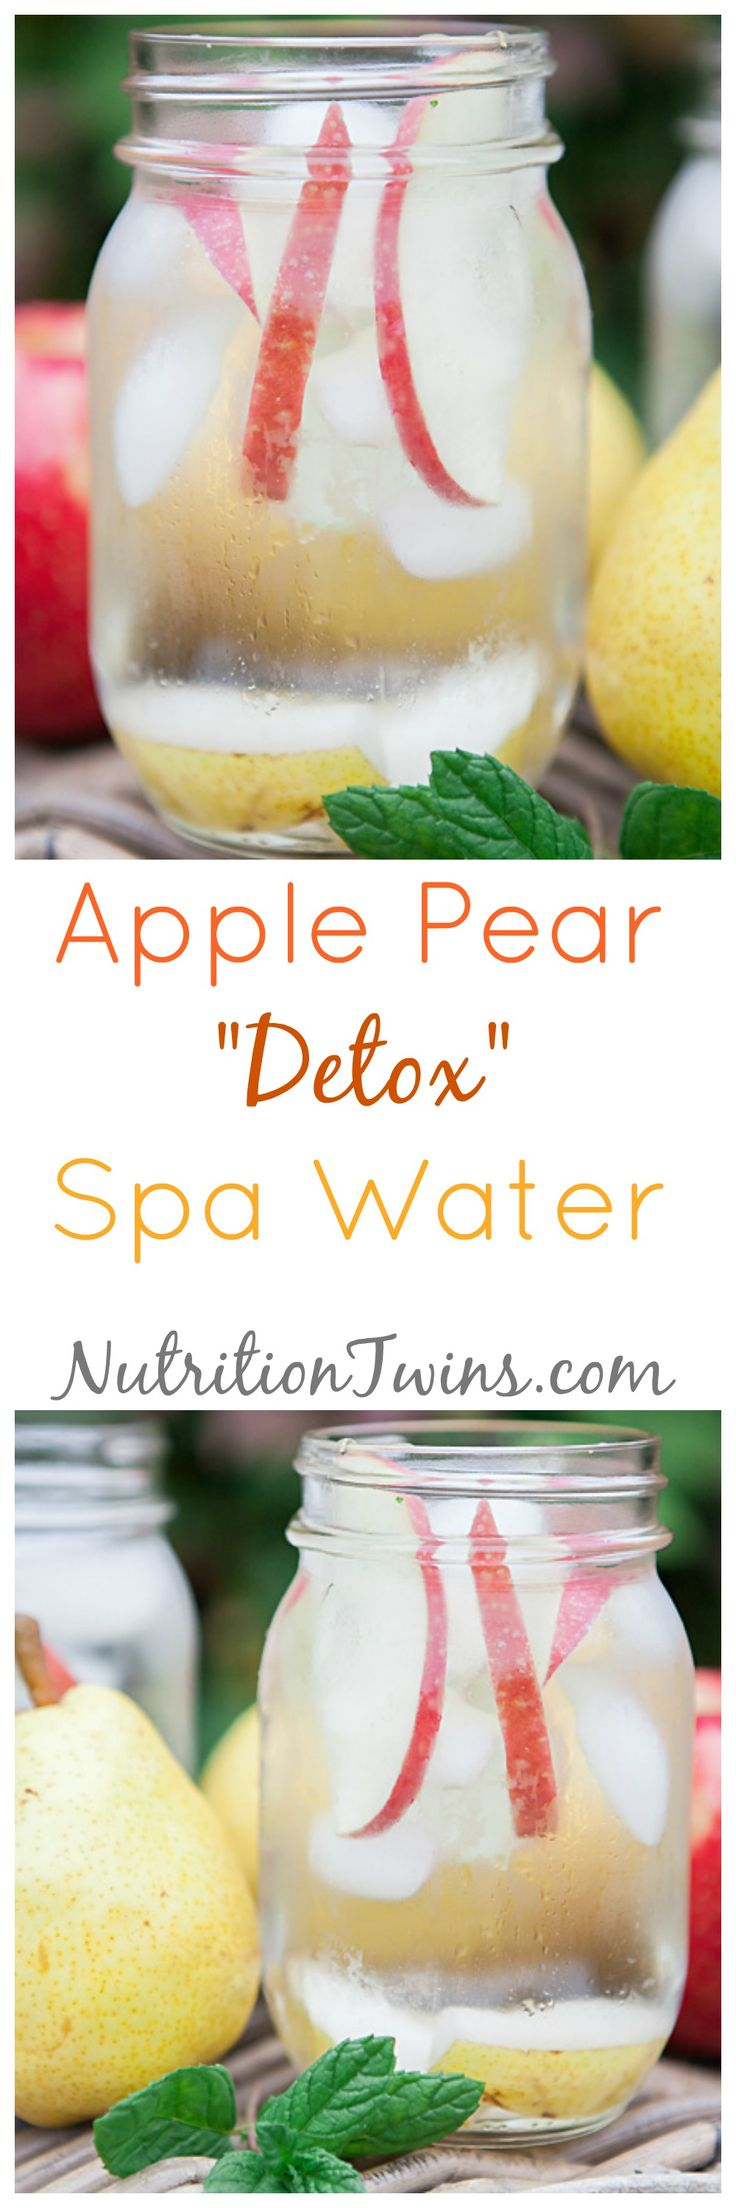 """Apple Pear """"Detox"""" Spa Water 